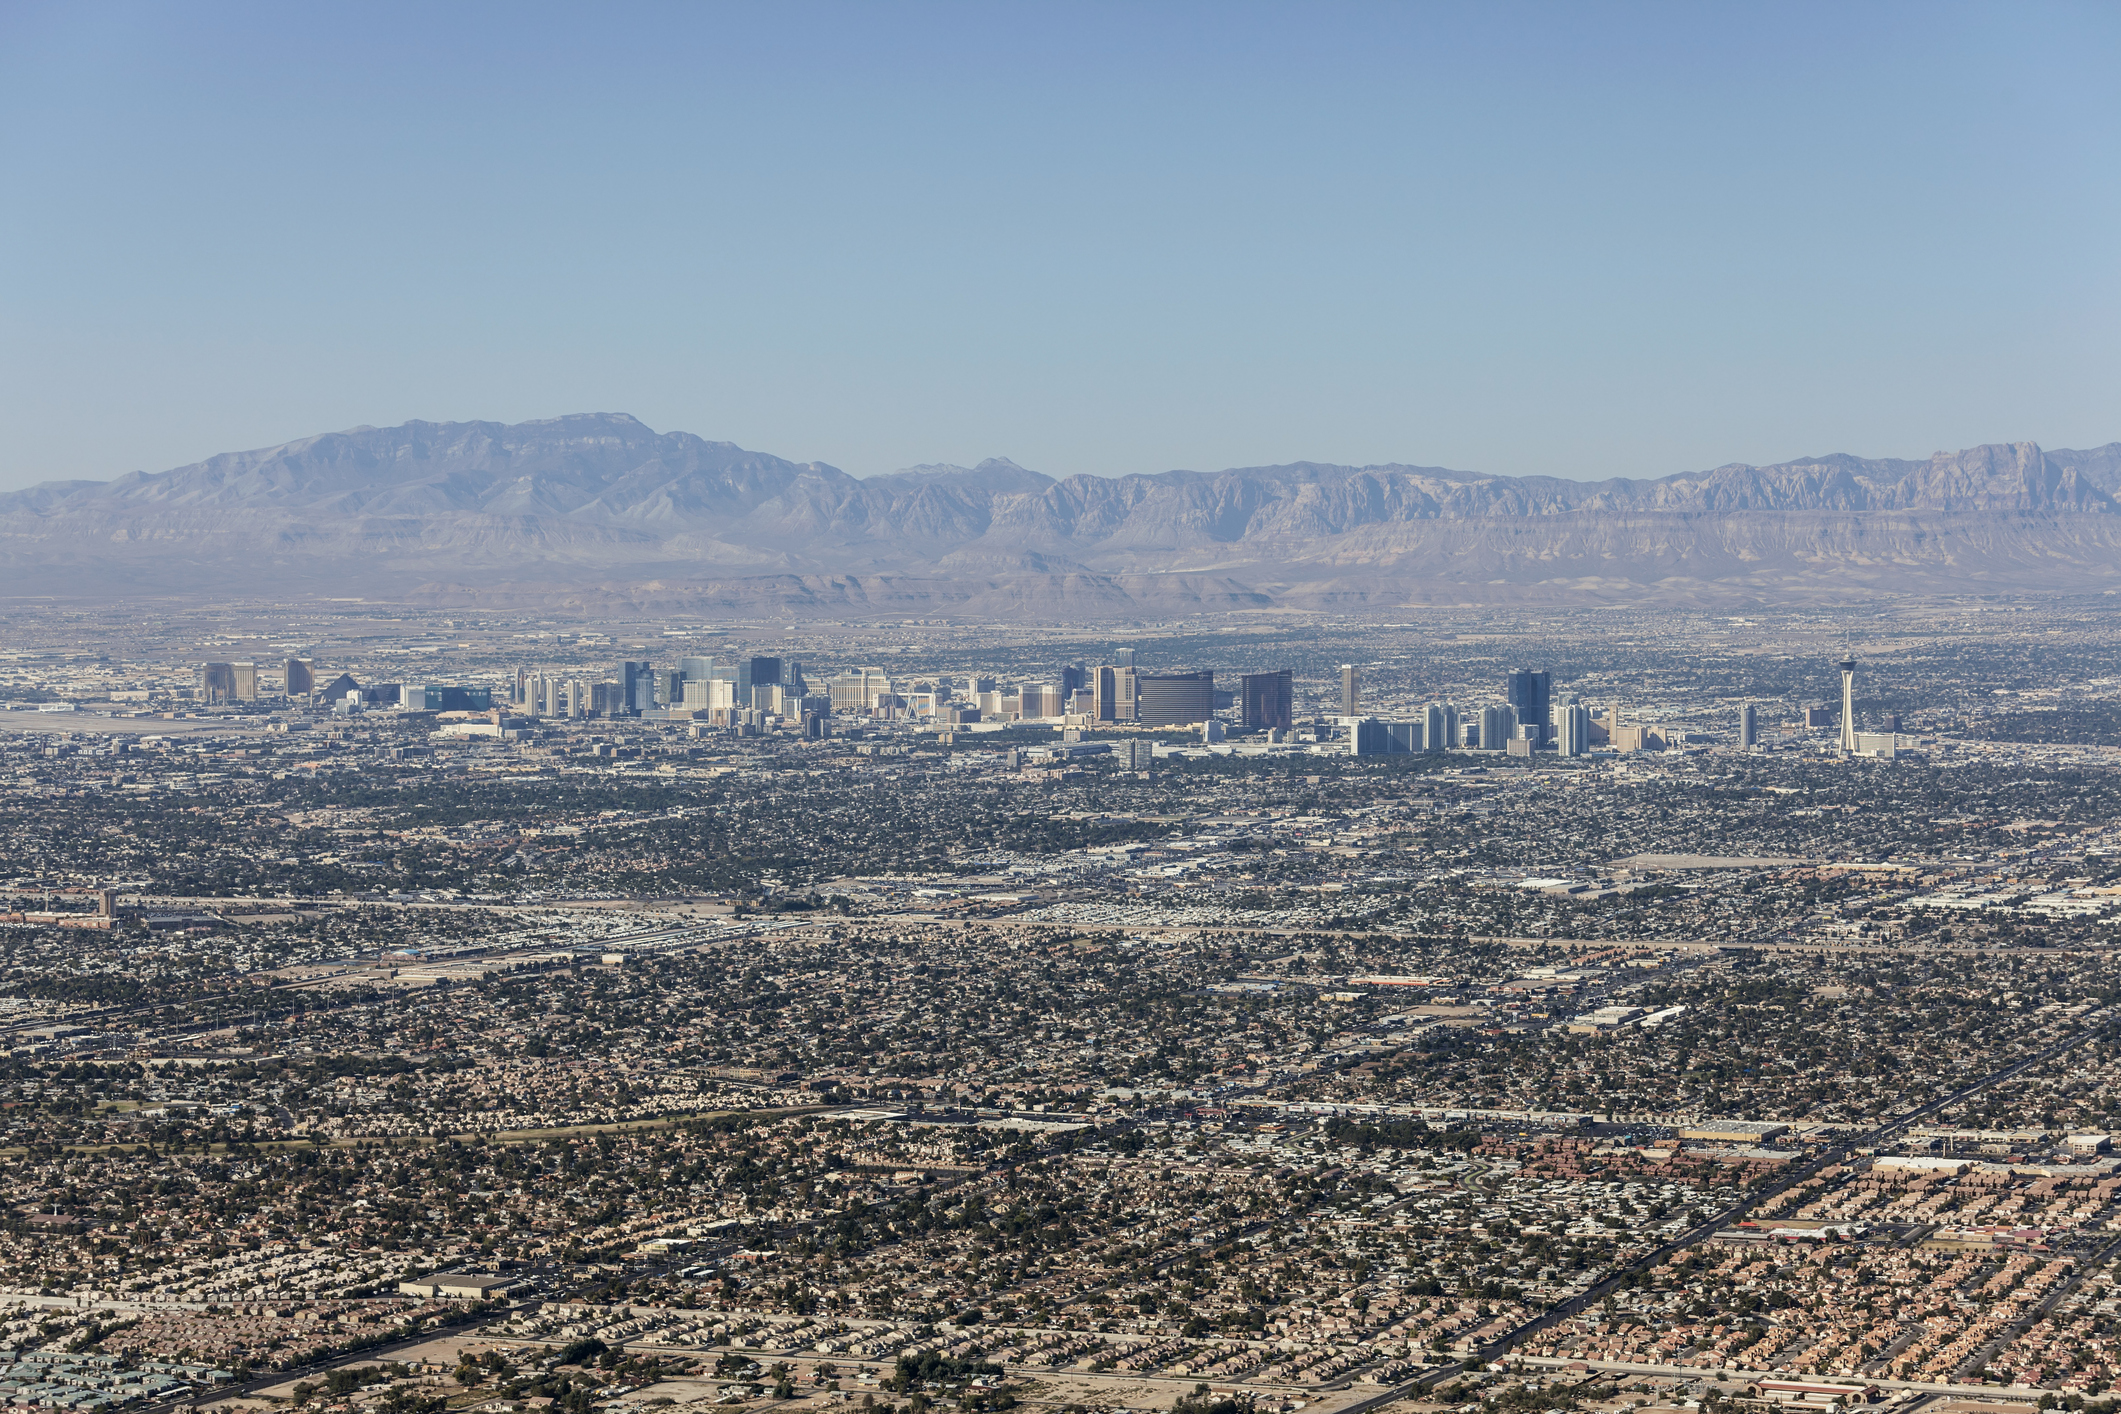 Las Vegas City Sprawl